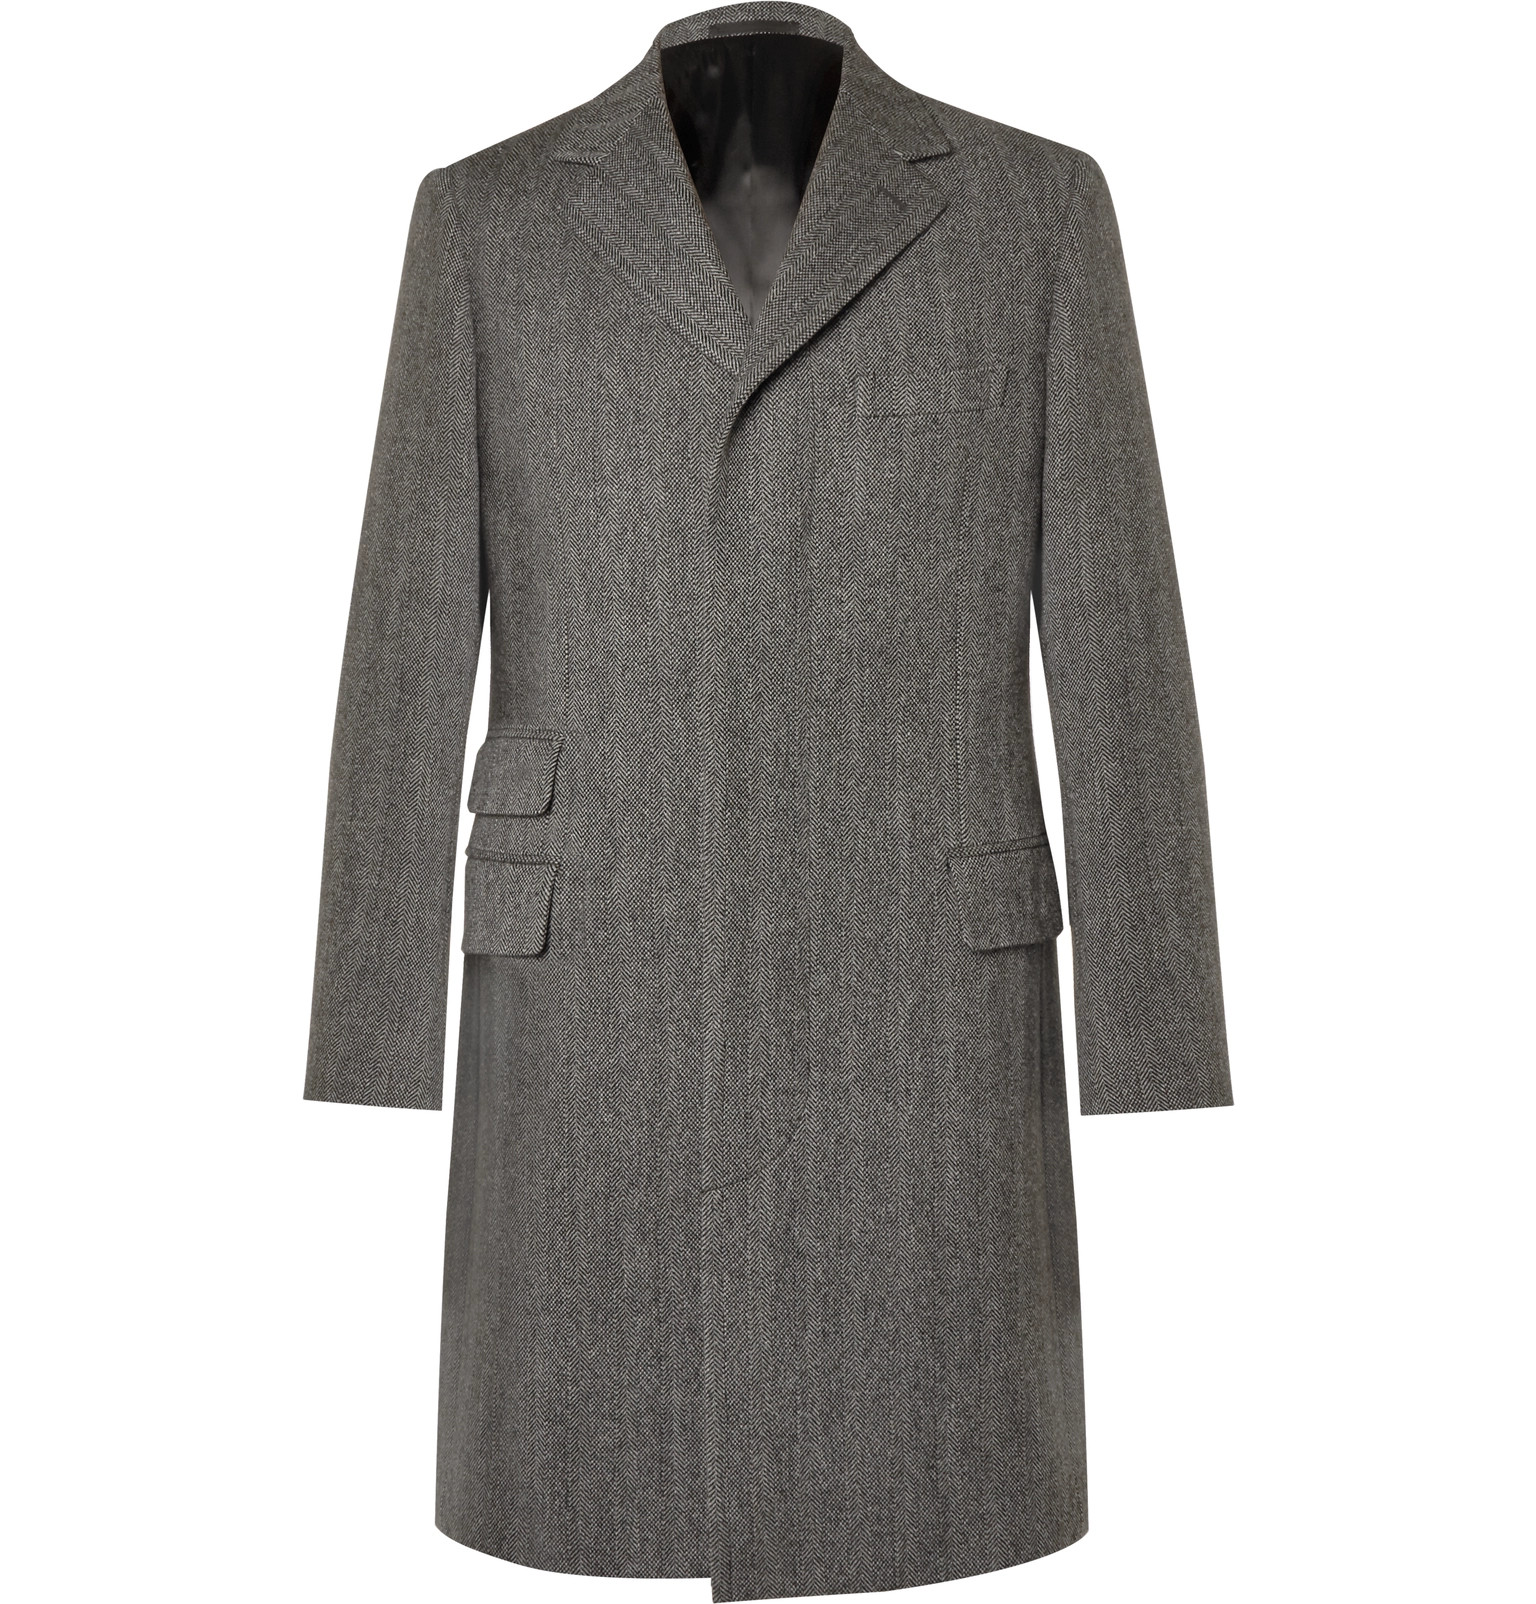 Men's Designer Winter Coats - Shop Men's Fashion Online at MR PORTER